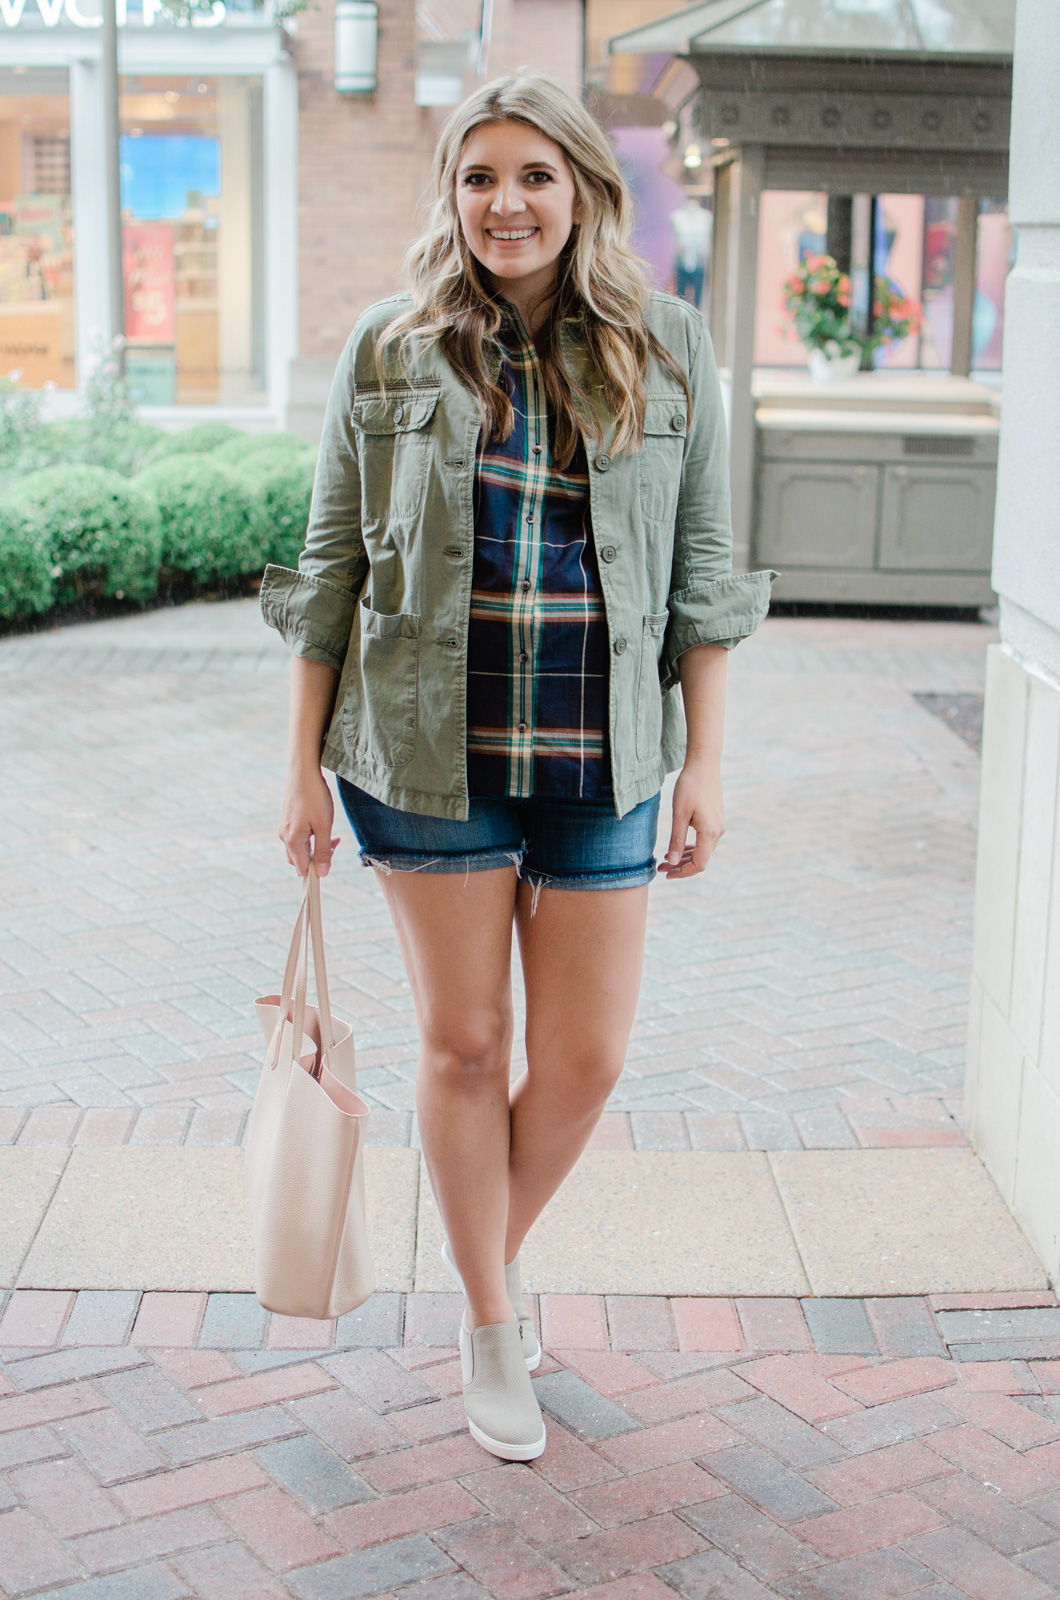 early fall maternity style - the perfect fall transition bump outfit: green utility vest, plaid top, denim shorts, and wedge sneakers | bylaurenm.com